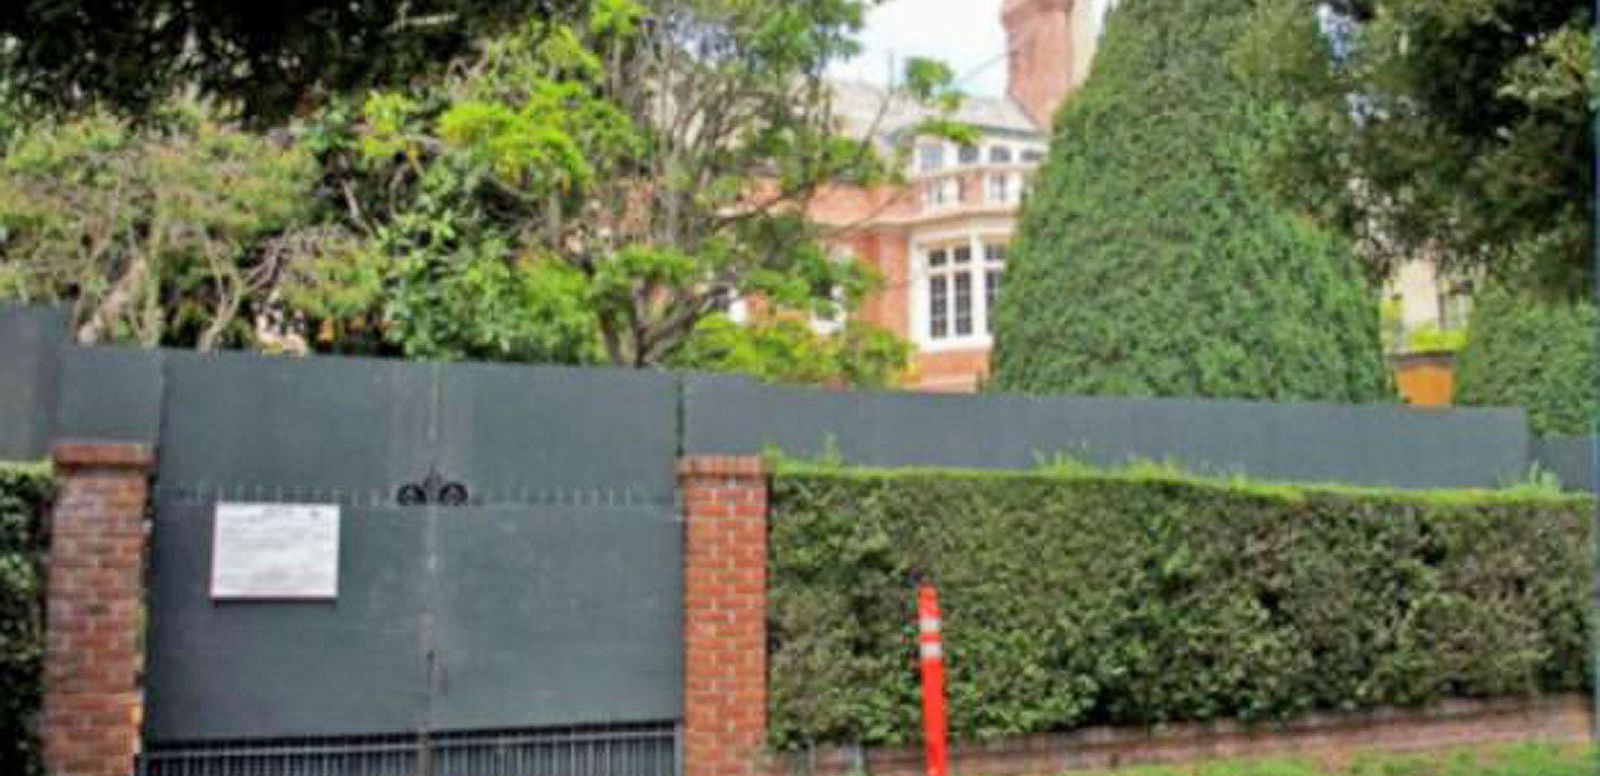 VIDEO: Facebook's Mark Zuckerberg Angers Neighbors With Waterfront Property Wall